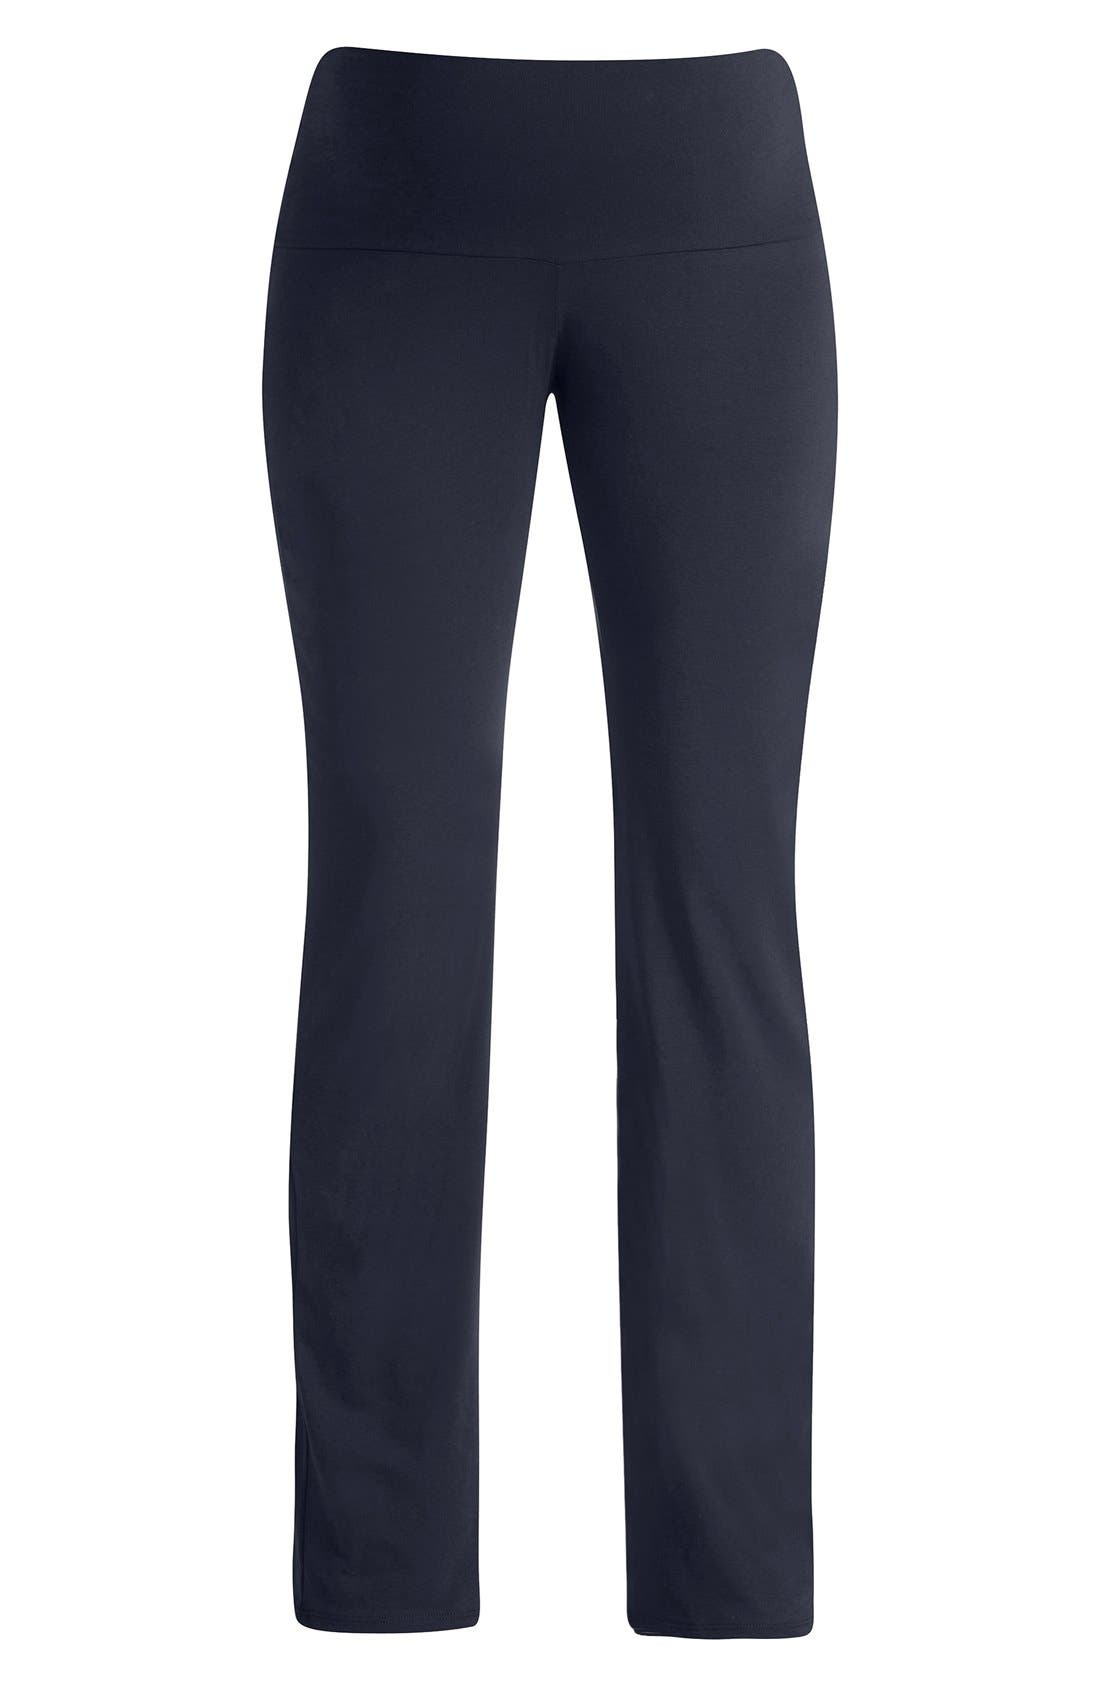 NOPPIES 'Ninette' Jersey Maternity Pants